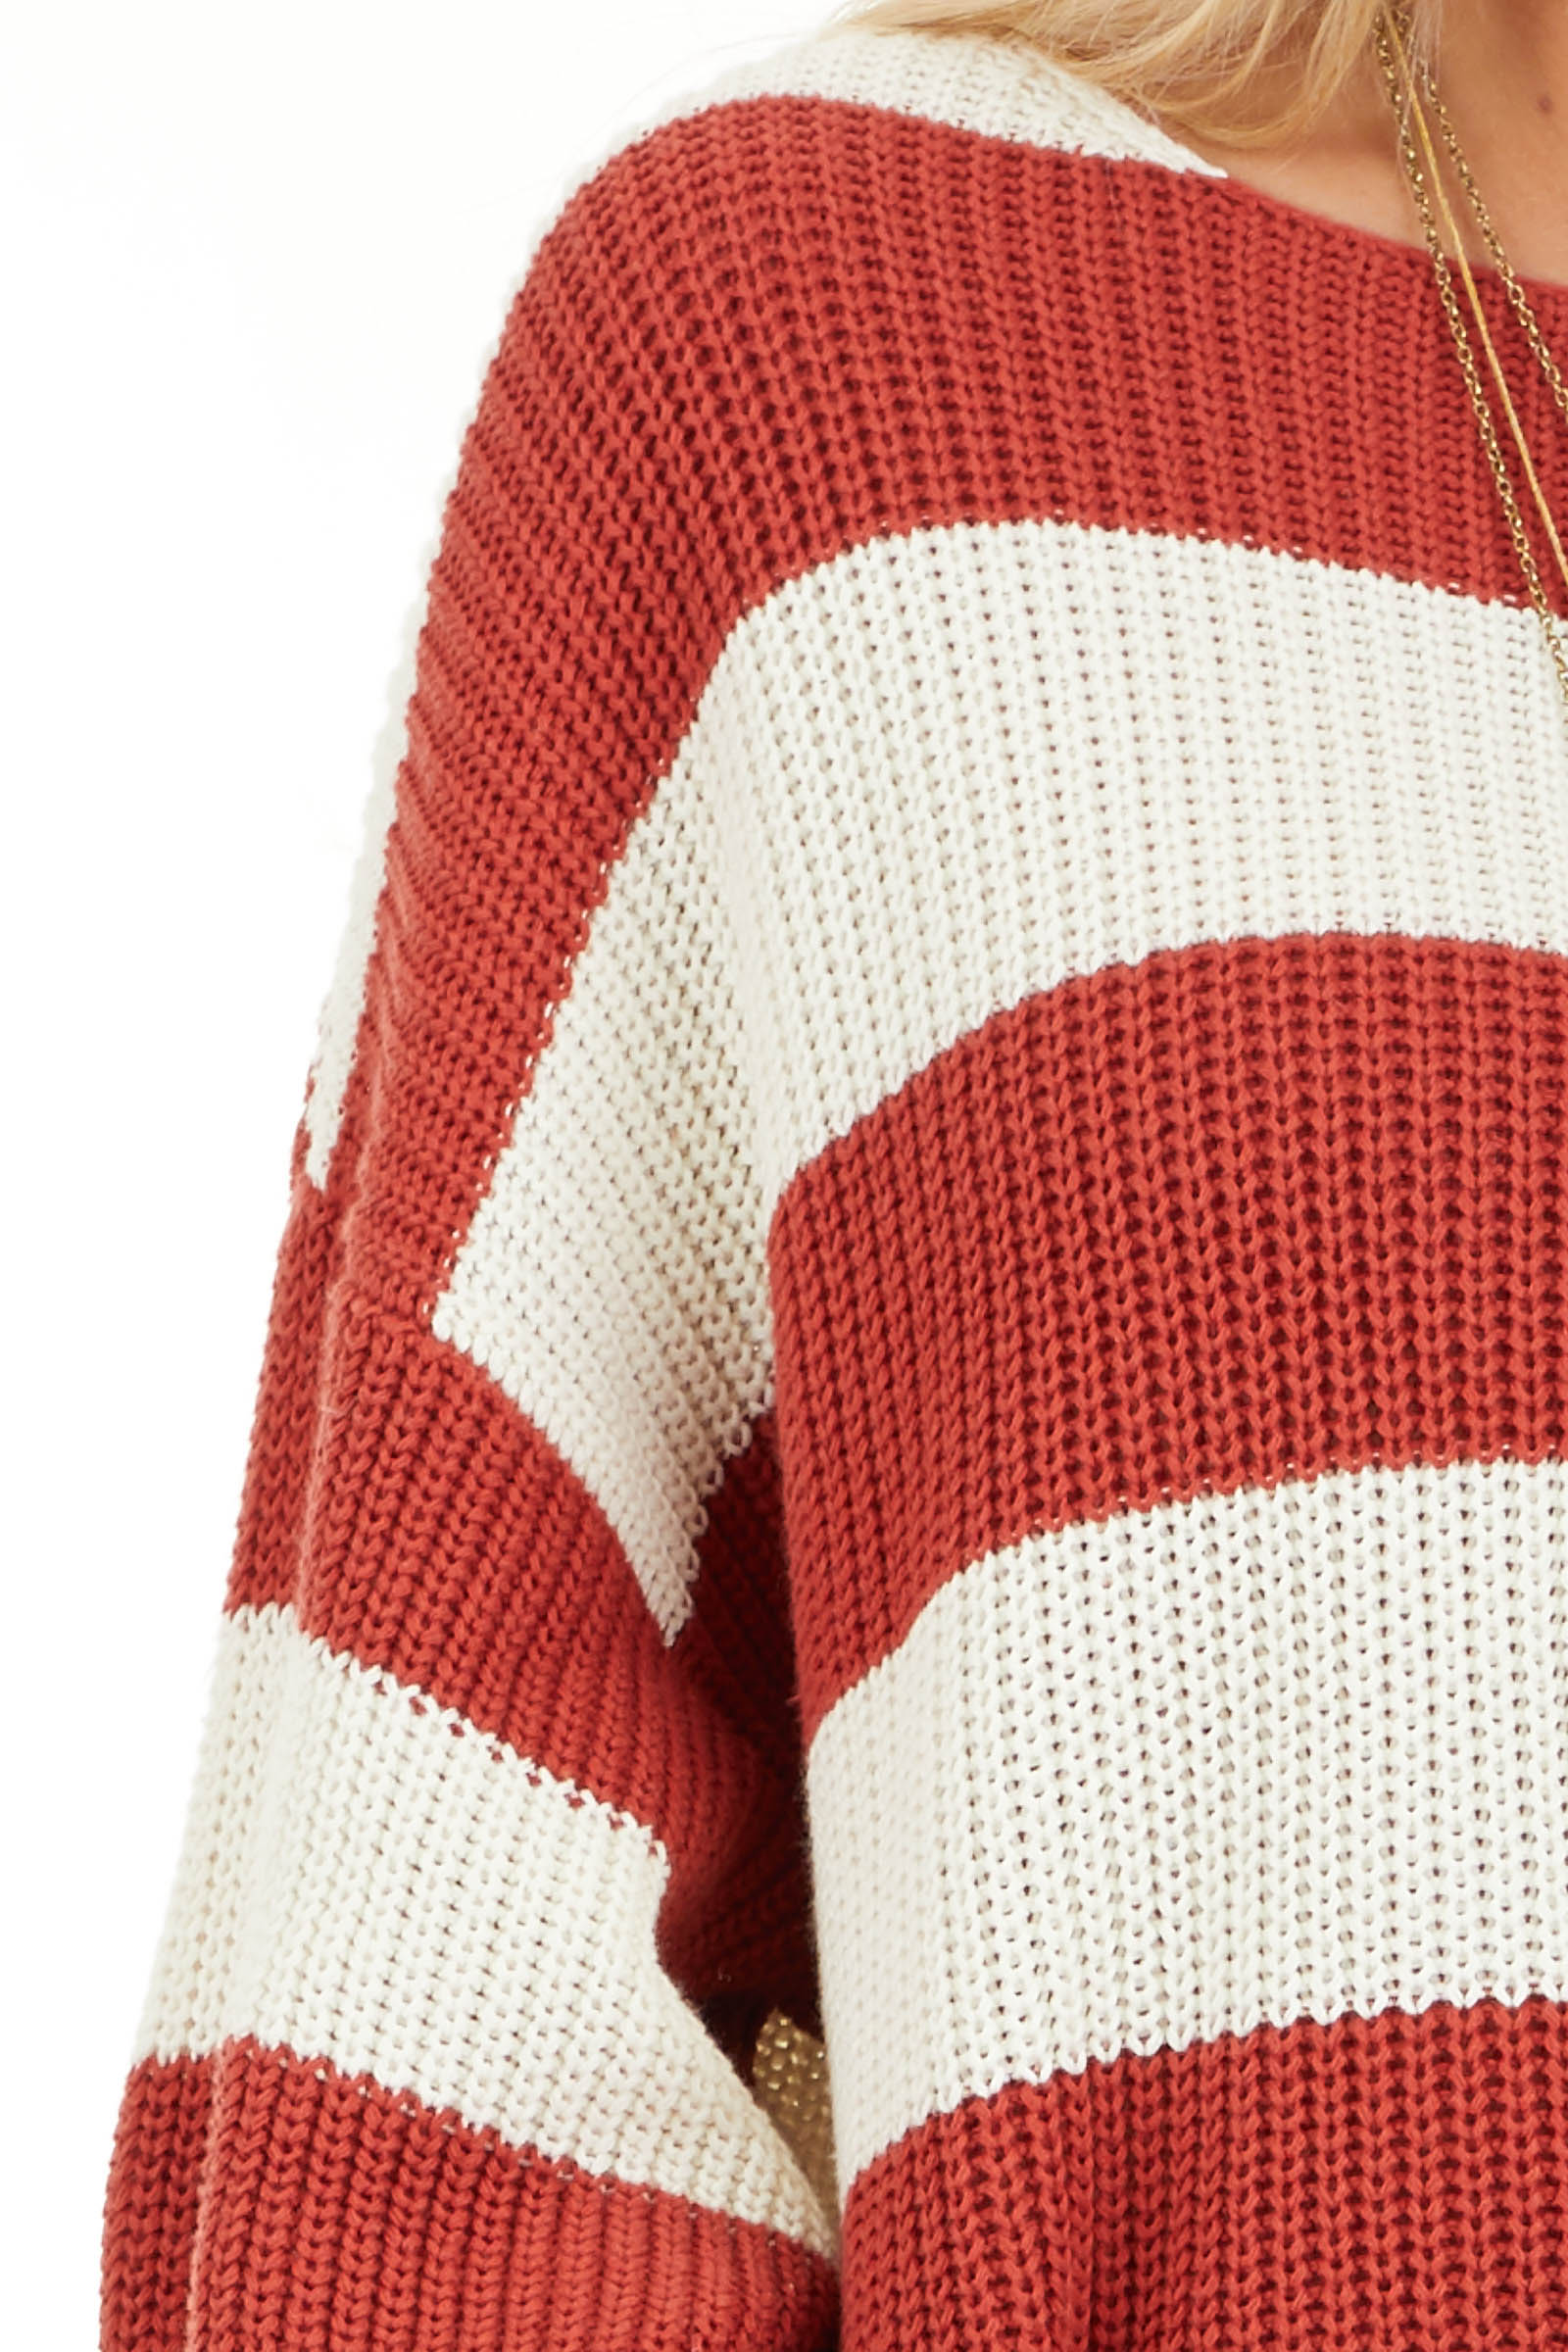 Ivory and Rust Striped Knit Sweater with Puff Sleeves detail